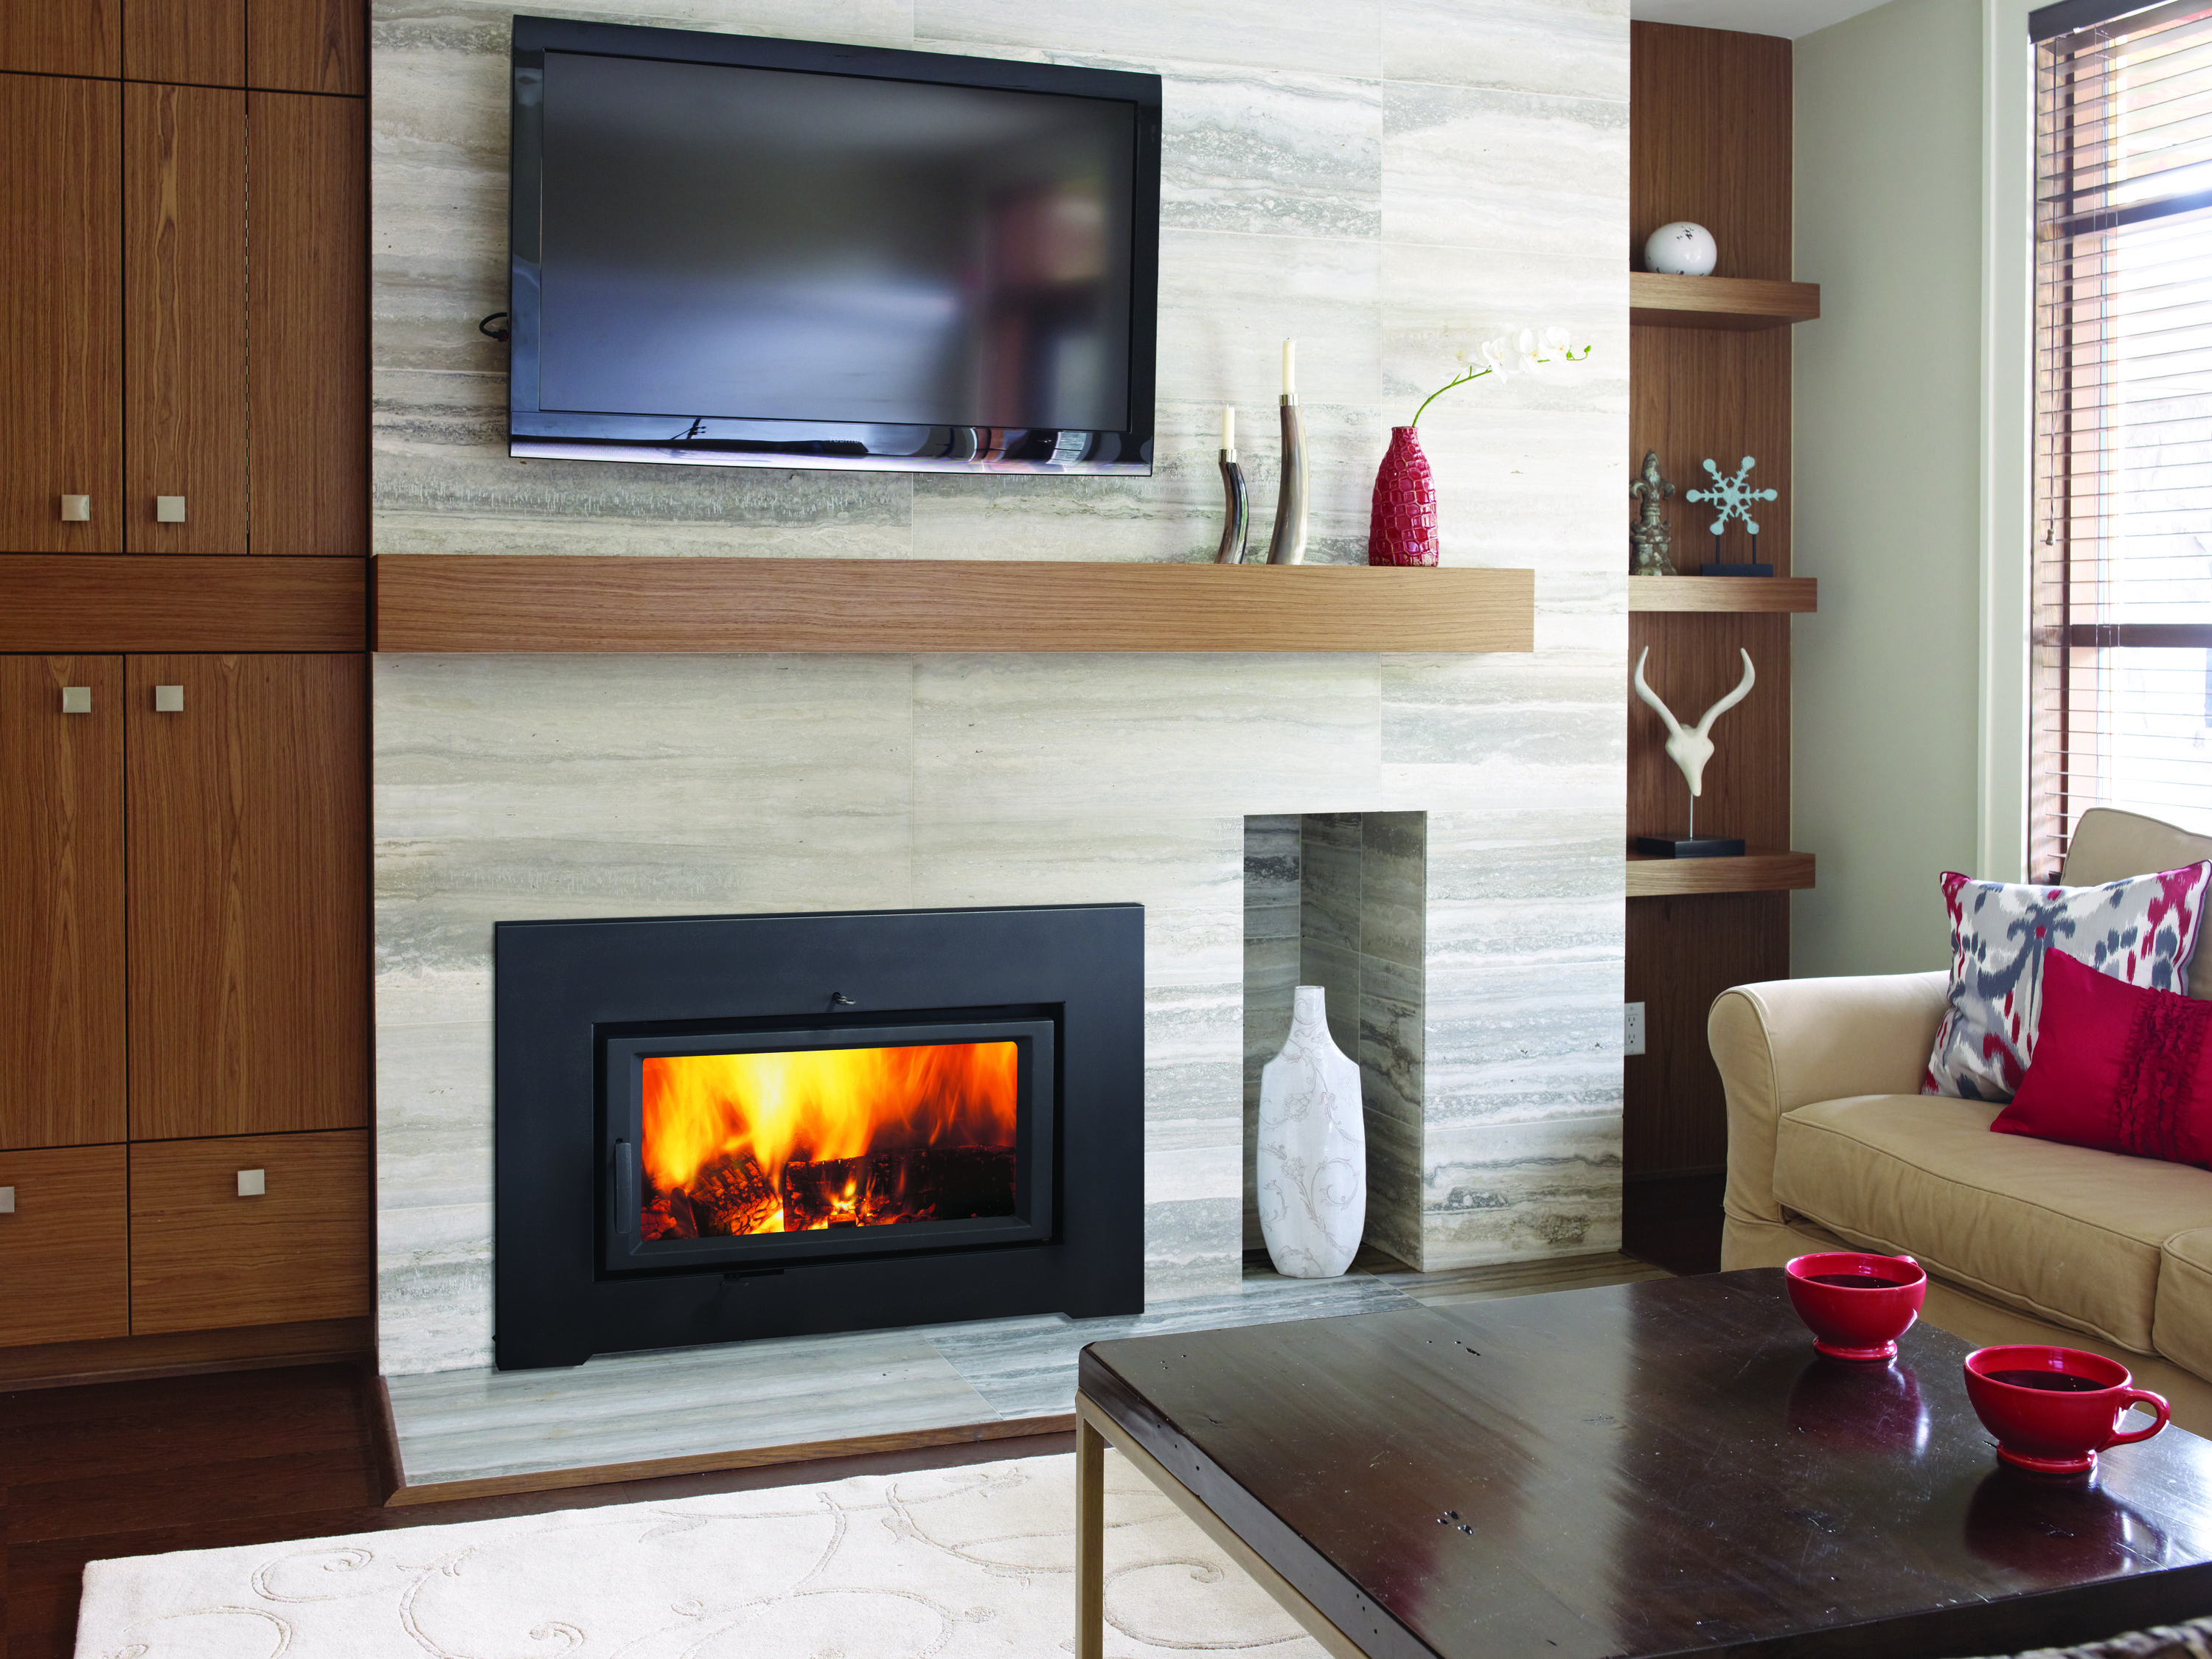 Smooth Stone Fireplace Wall Note The Mantel Face Matches The